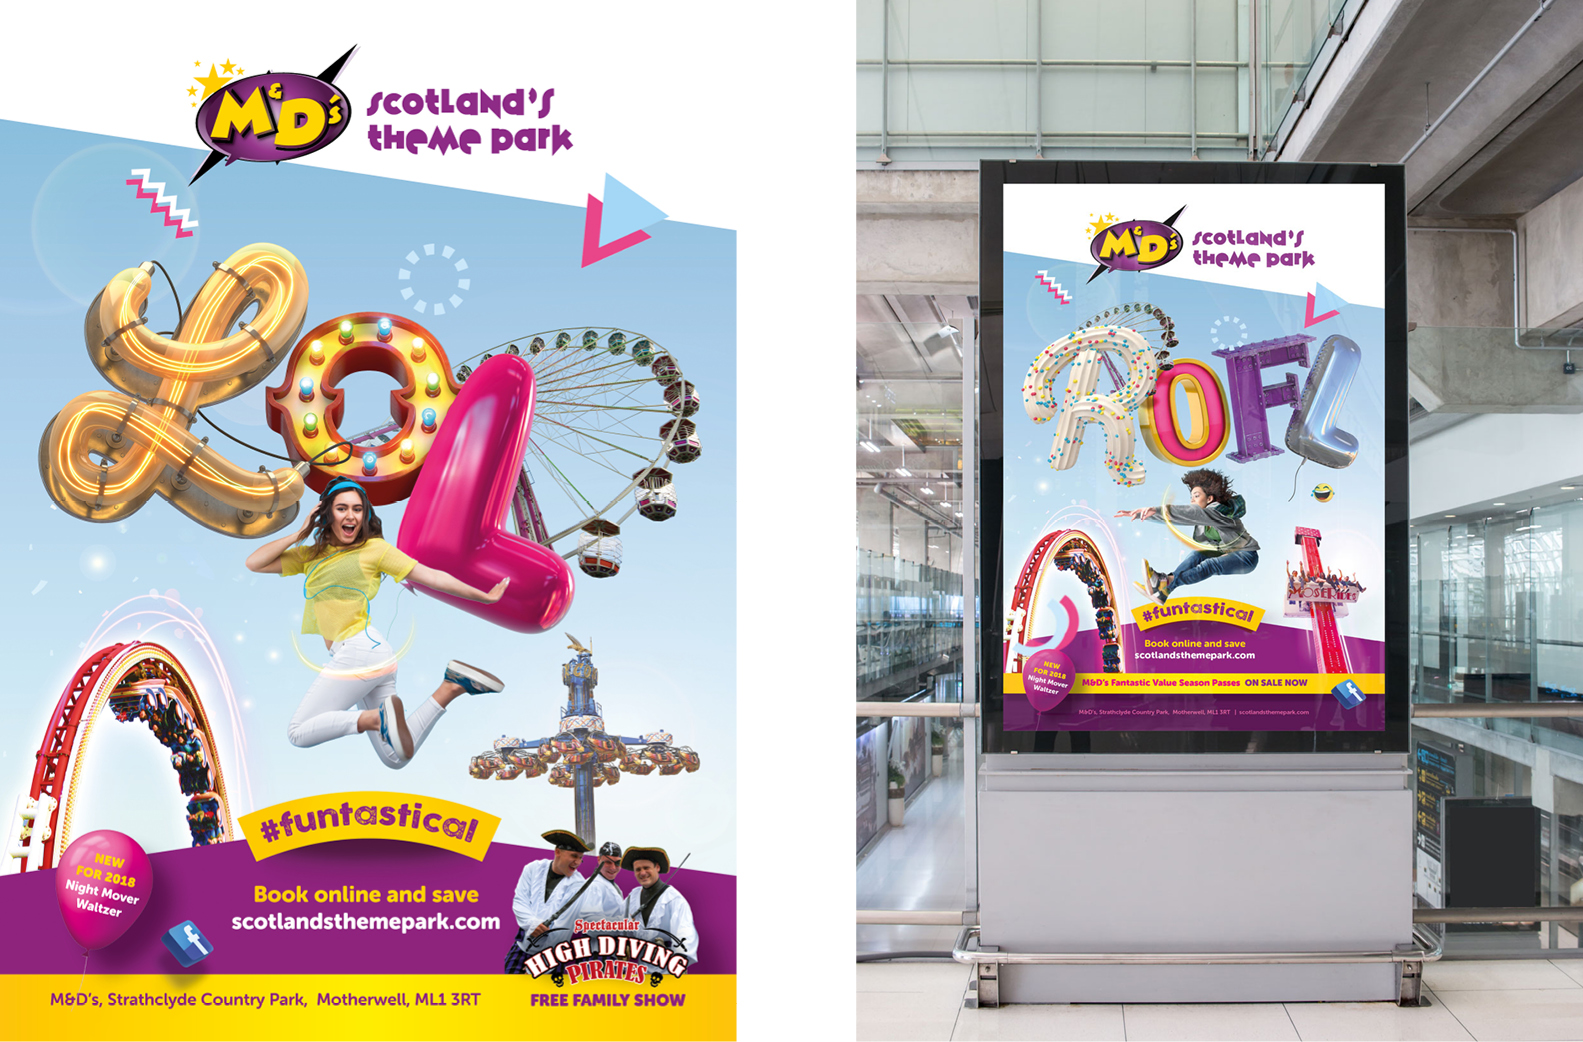 M&D's Theme Park OMG Advertising Campaign Maguires